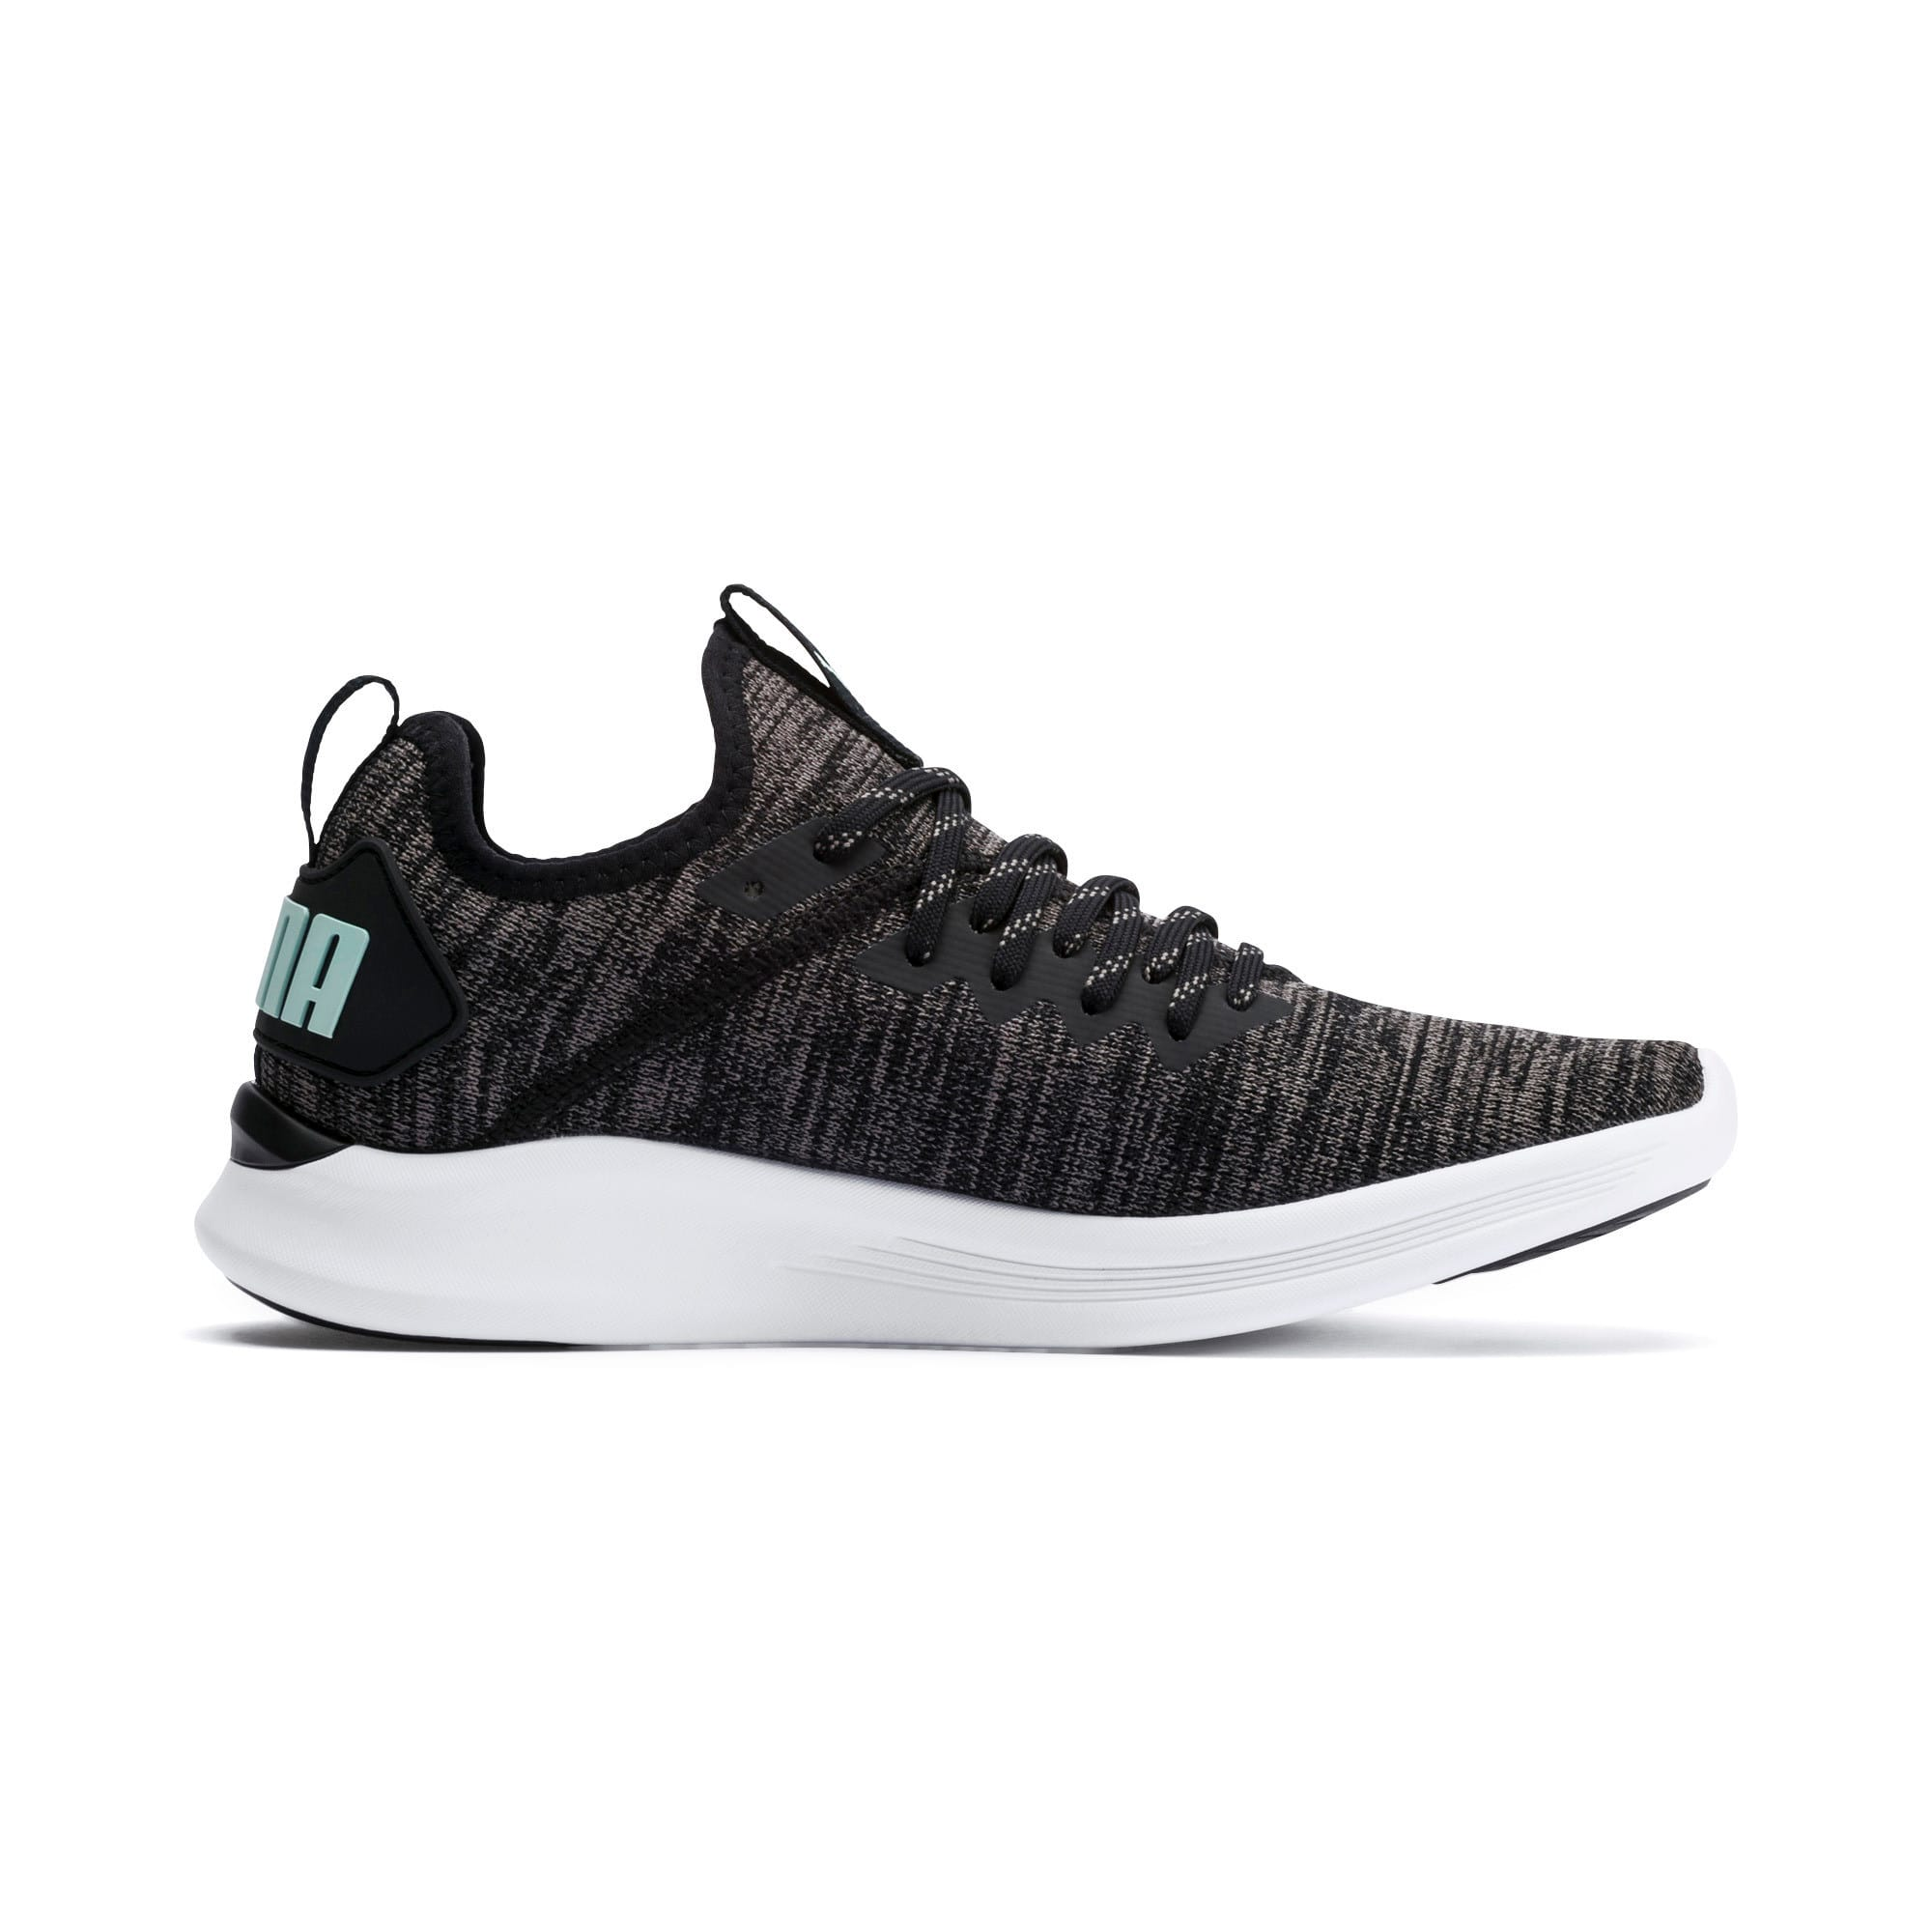 Thumbnail 6 of IGNITE Flash evoKNIT Damen Sneaker, Black-Charcoal-Fair Aqua, medium